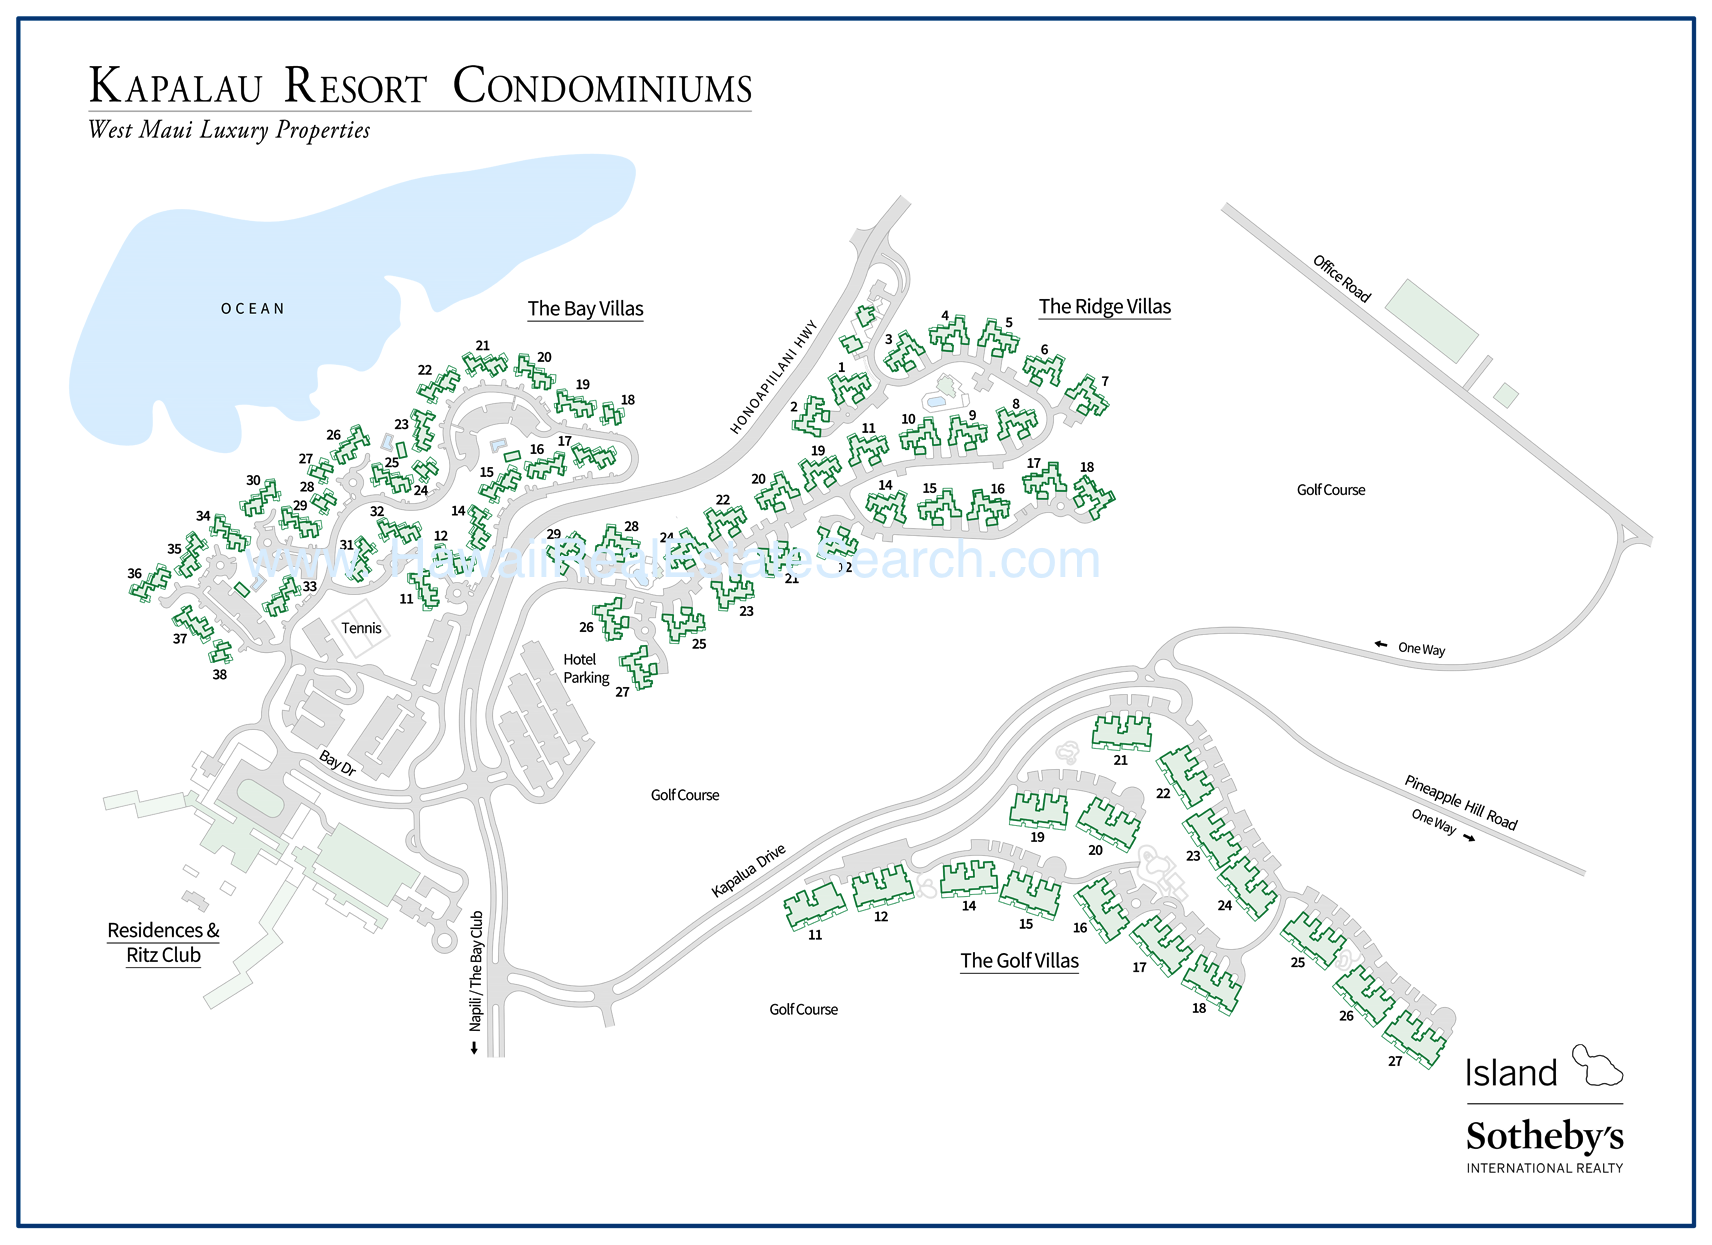 kapalua condo map